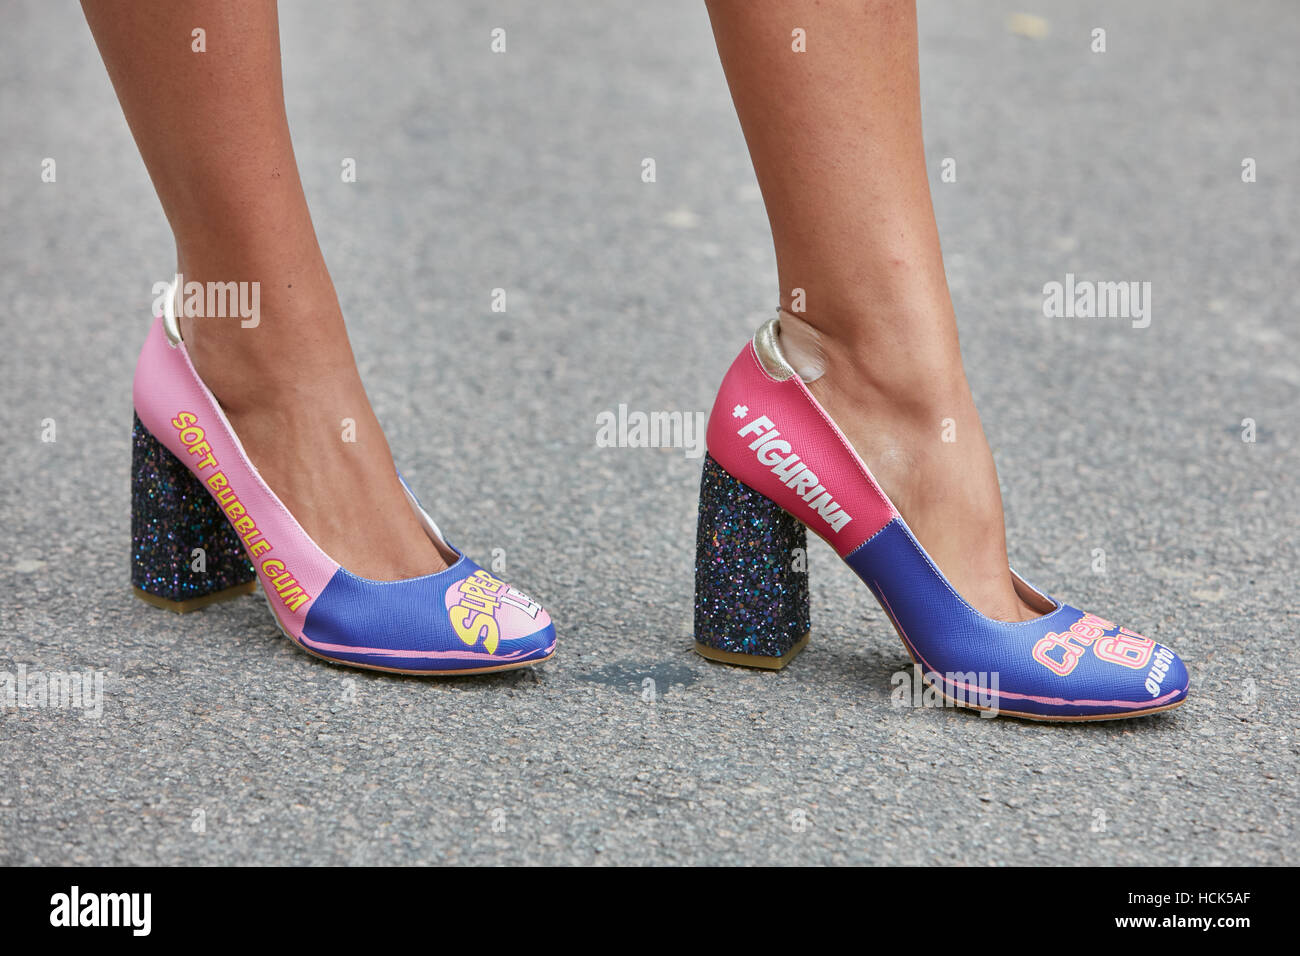 with high heel comic graphic shoes before prada